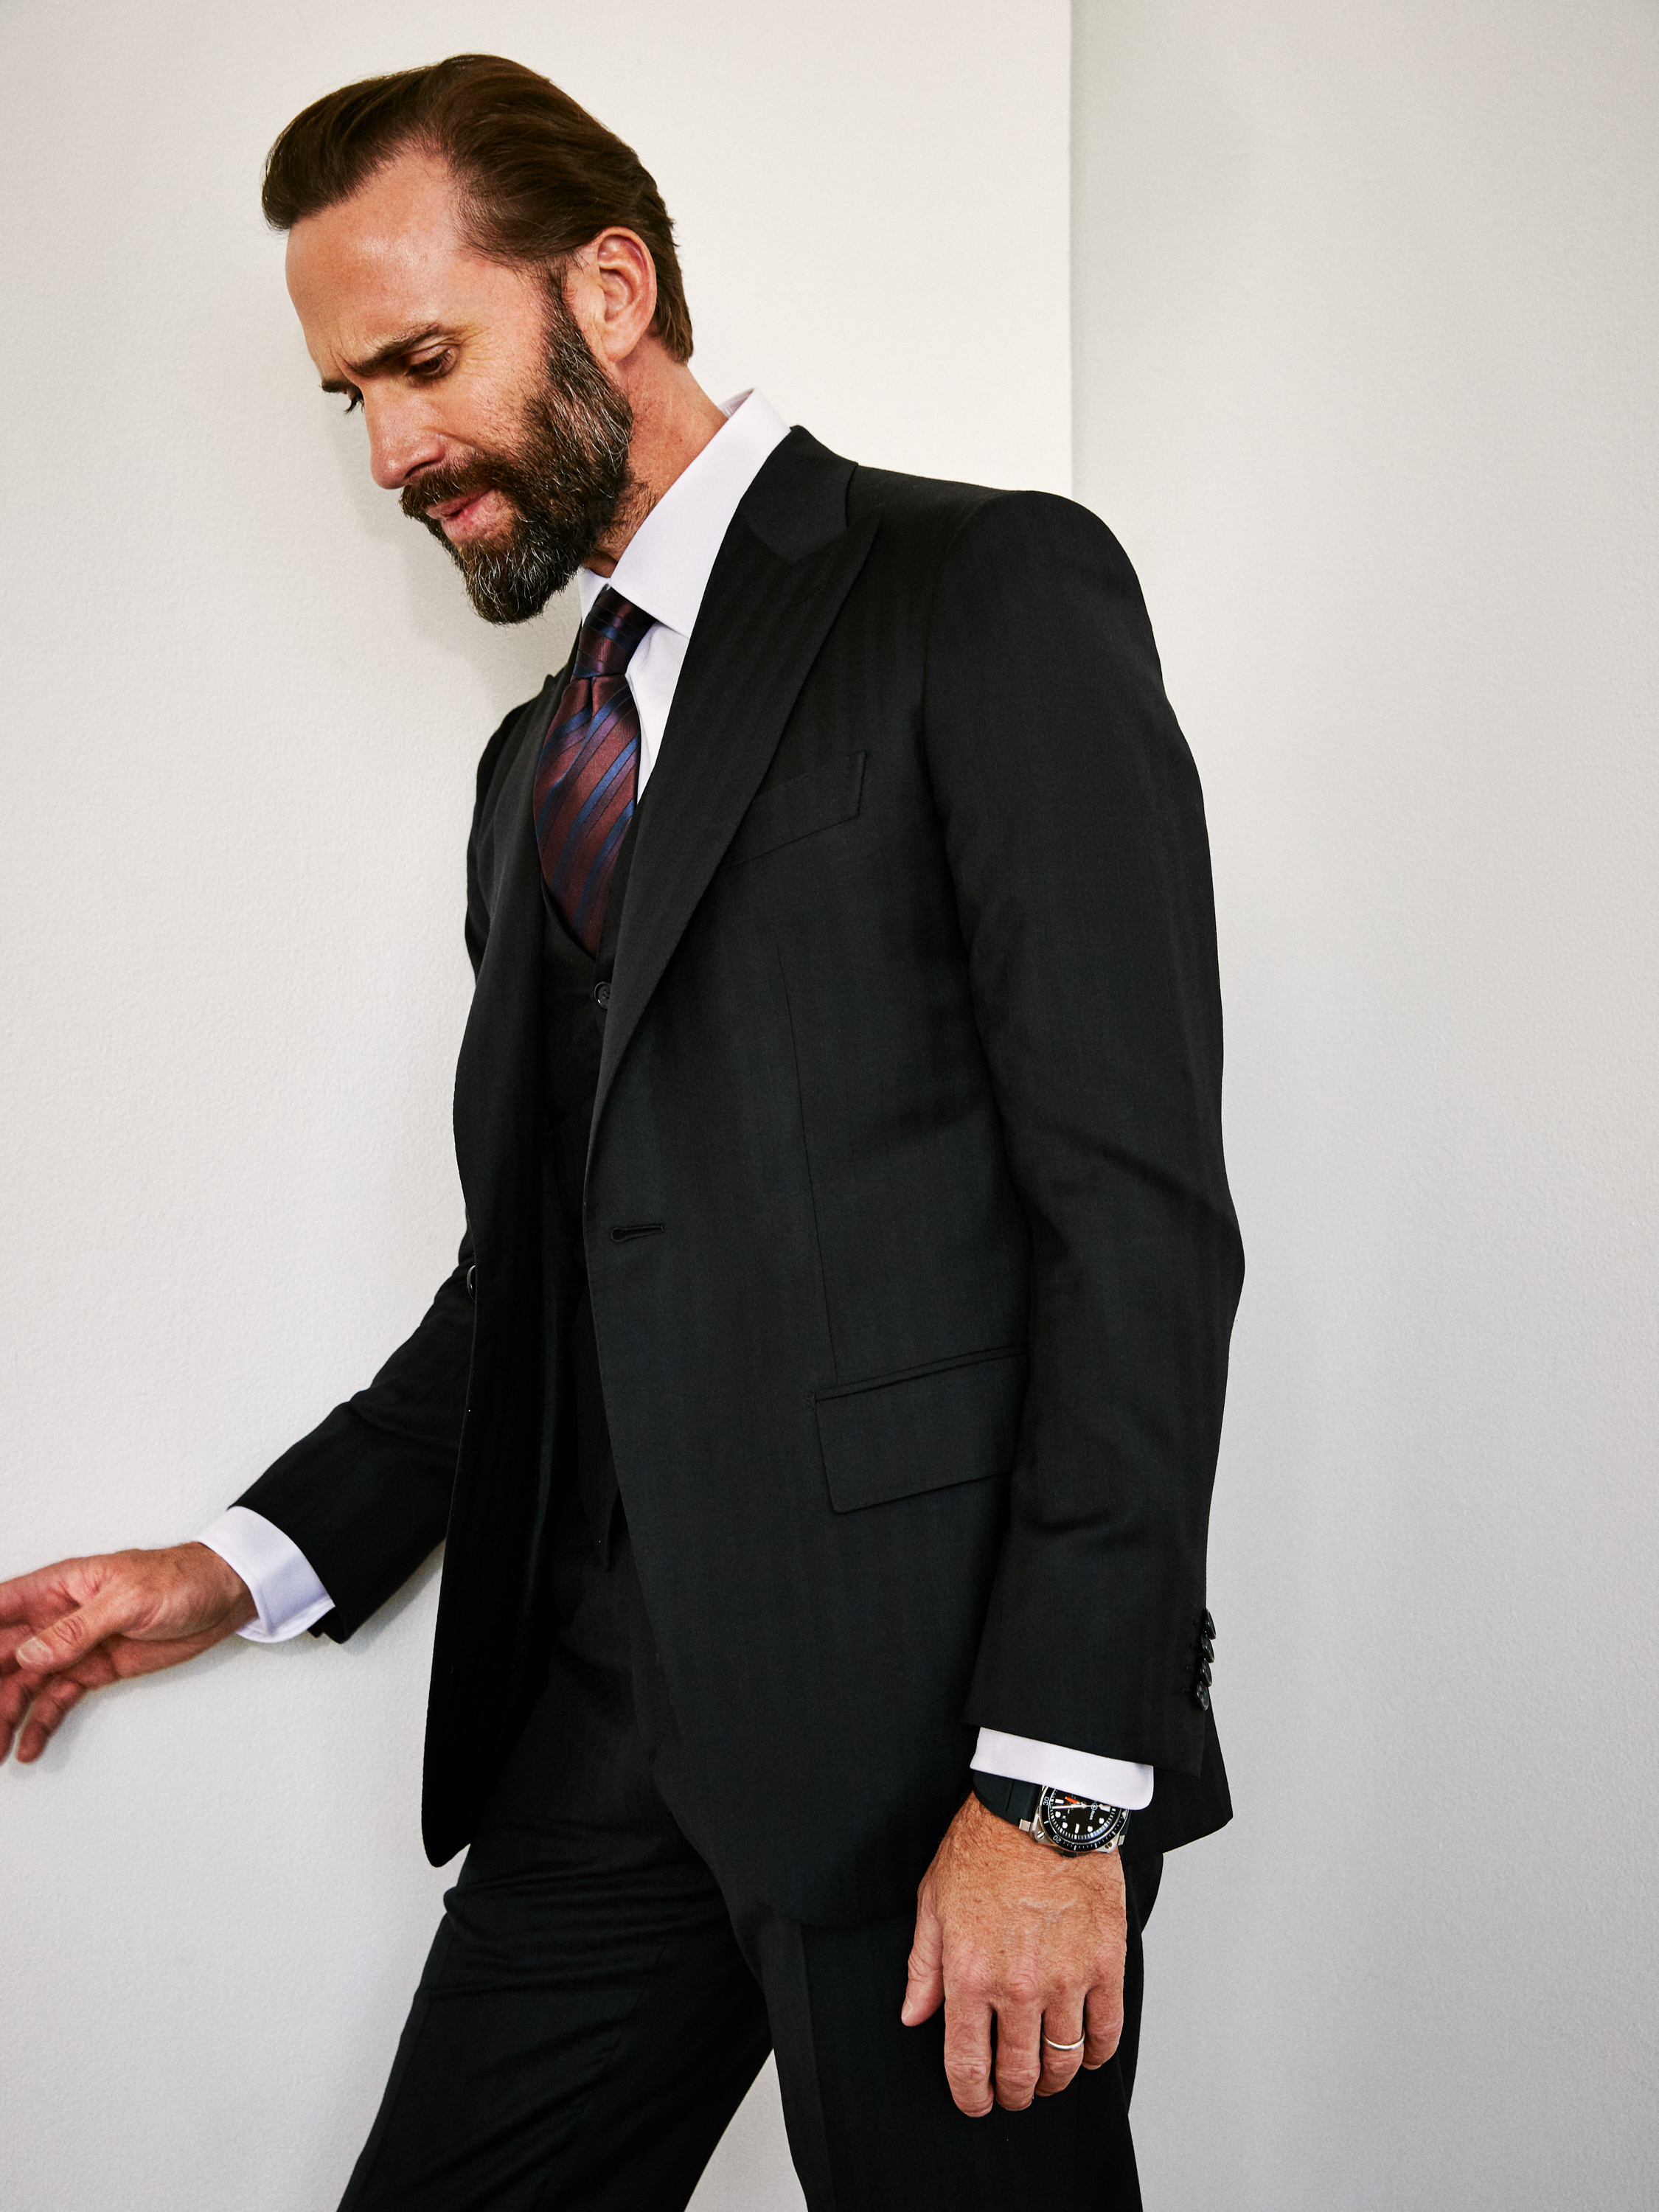 Outfits all by   BRIONI   Timepiece by  BELL & ROSS  | BR 03-92 Diver